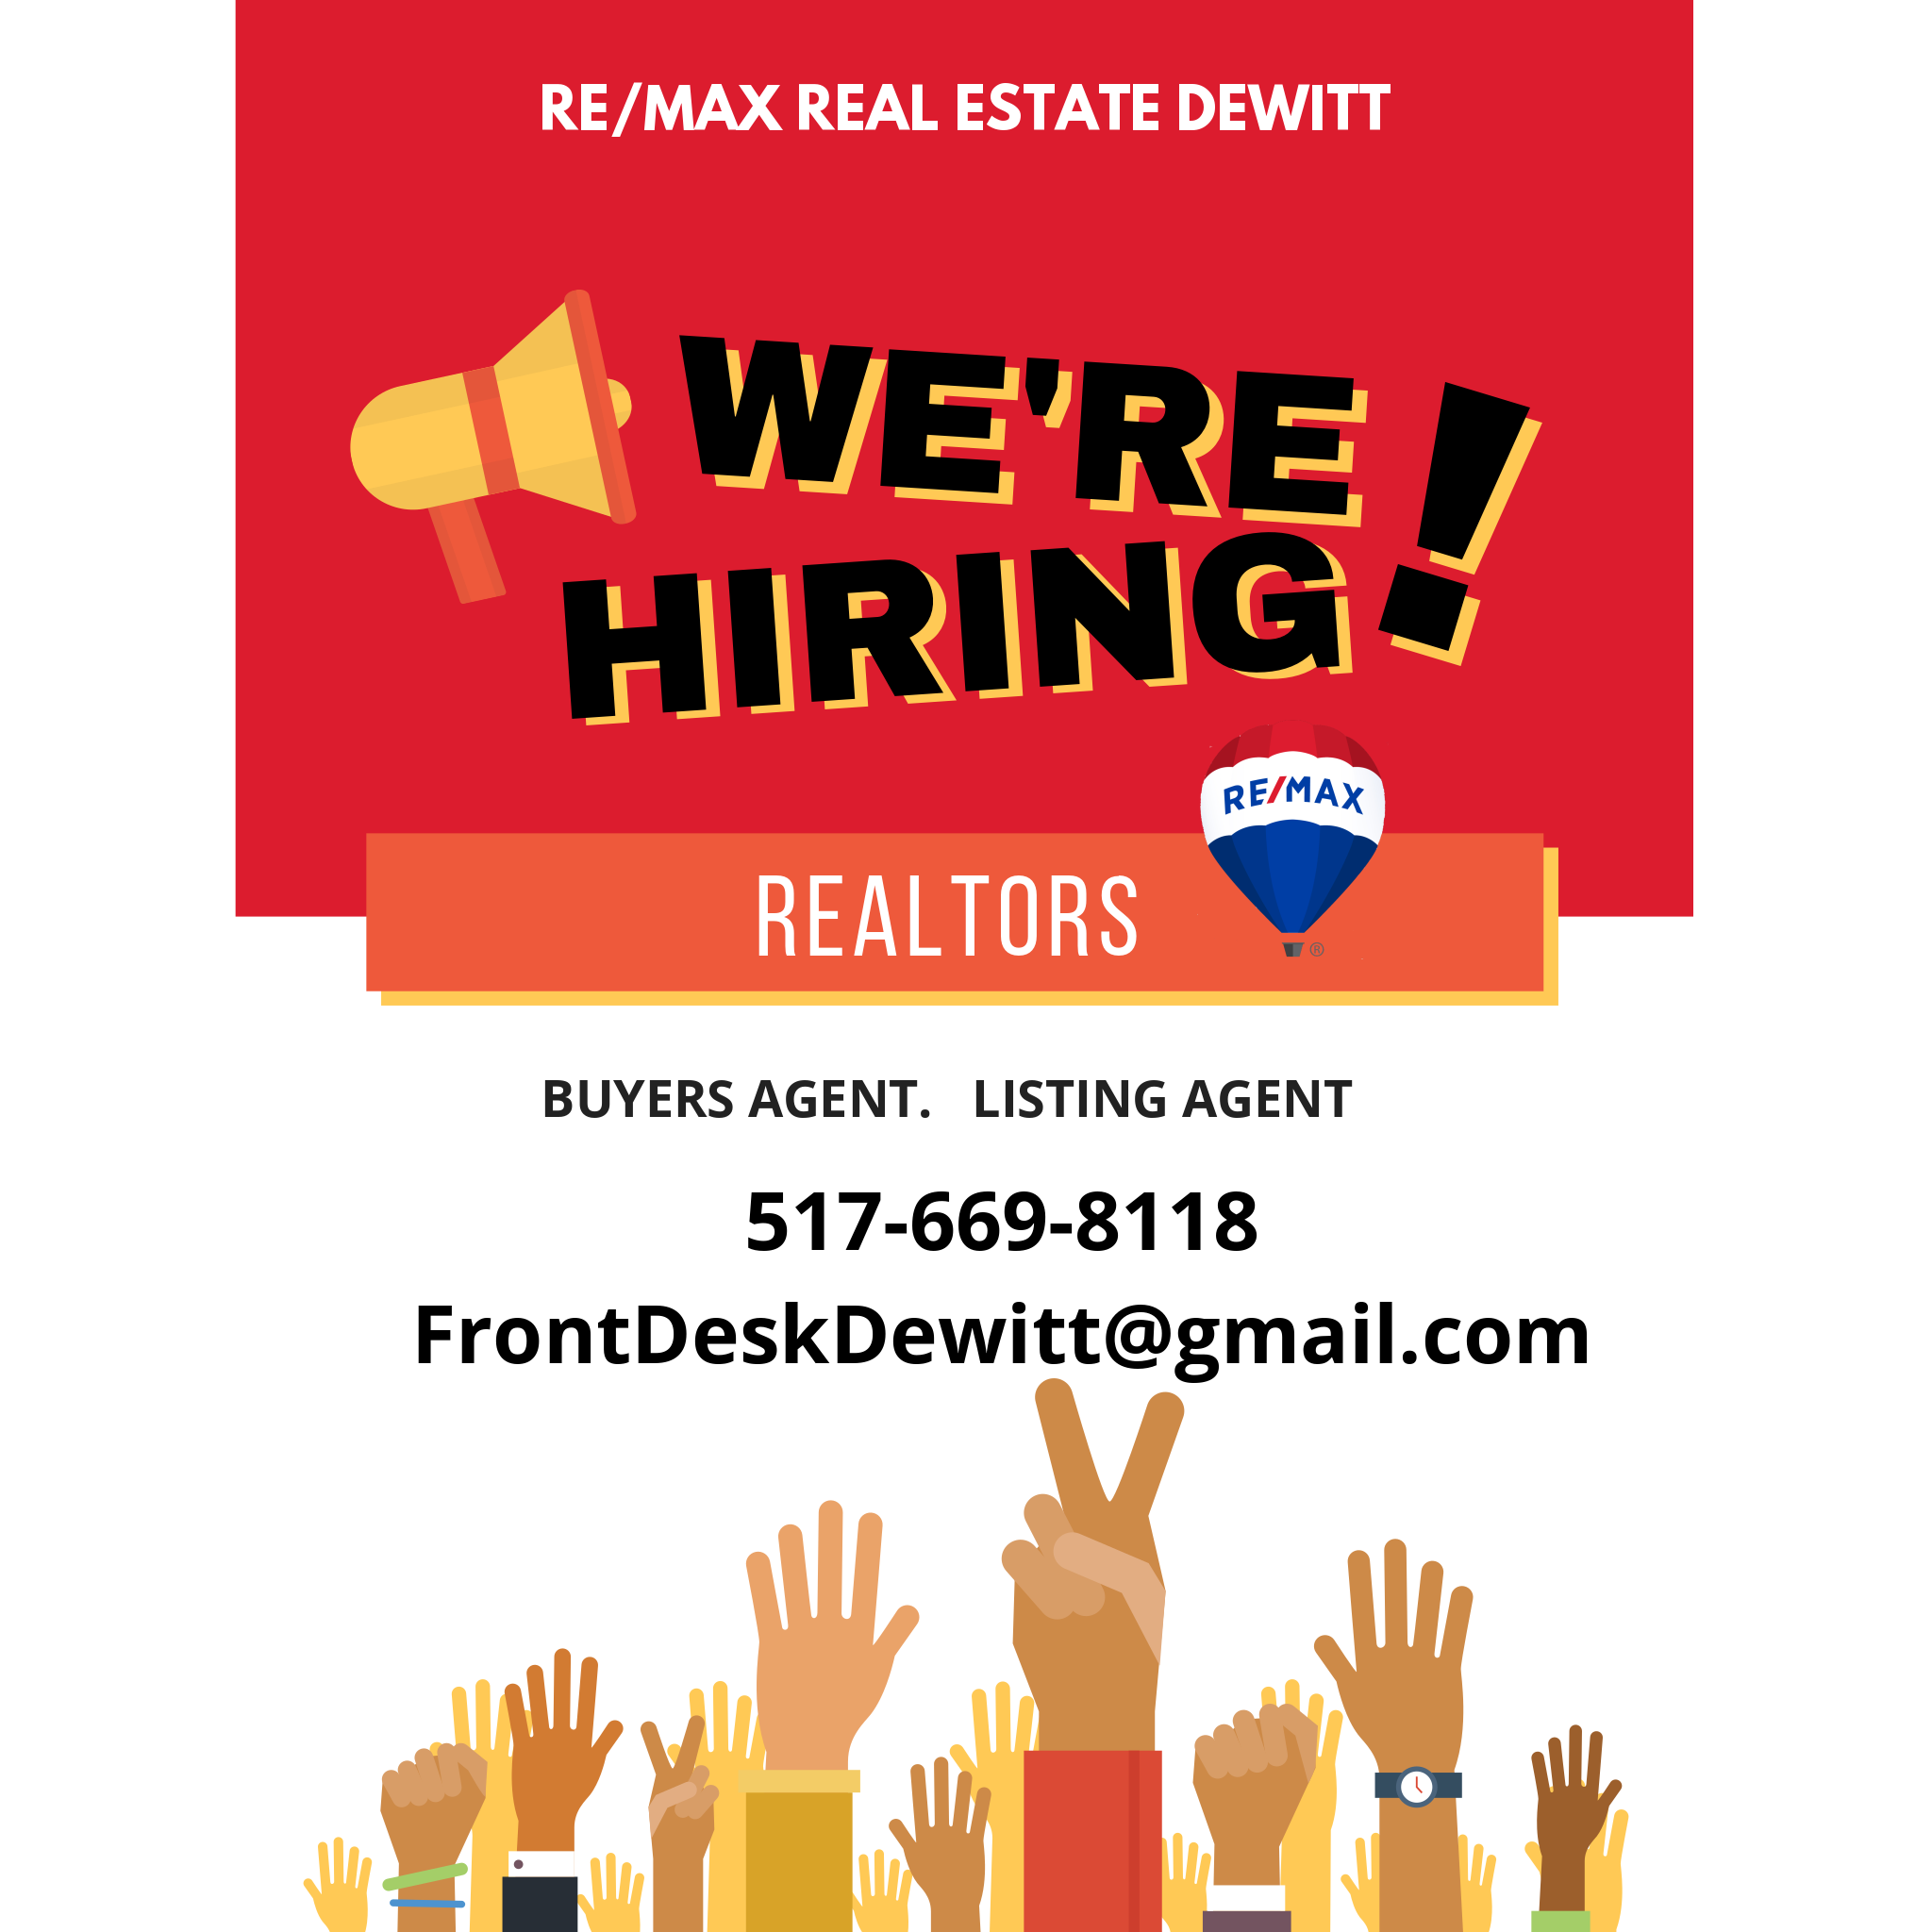 Realtor Classes Near Me Michigan Remax Jobs Realtor Classes